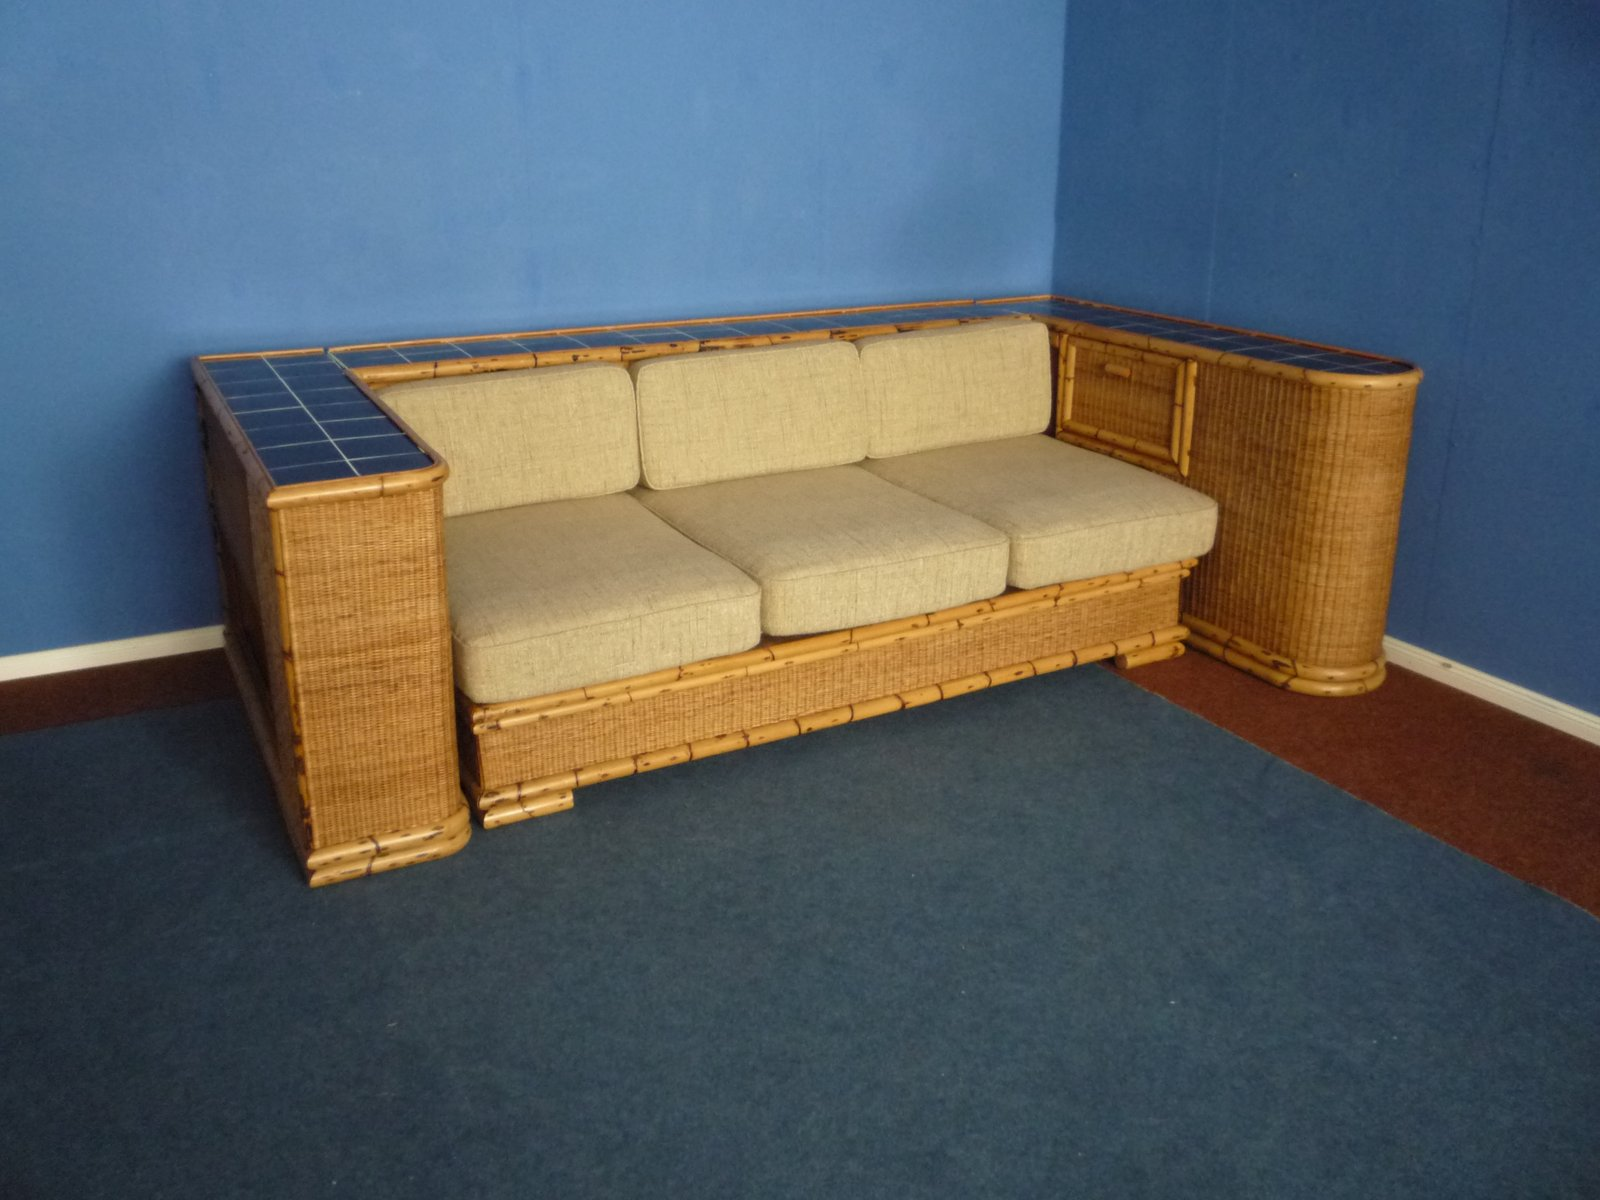 deutsches art deco sofa aus rattan bambus von arco 1940er bei pamono kaufen. Black Bedroom Furniture Sets. Home Design Ideas